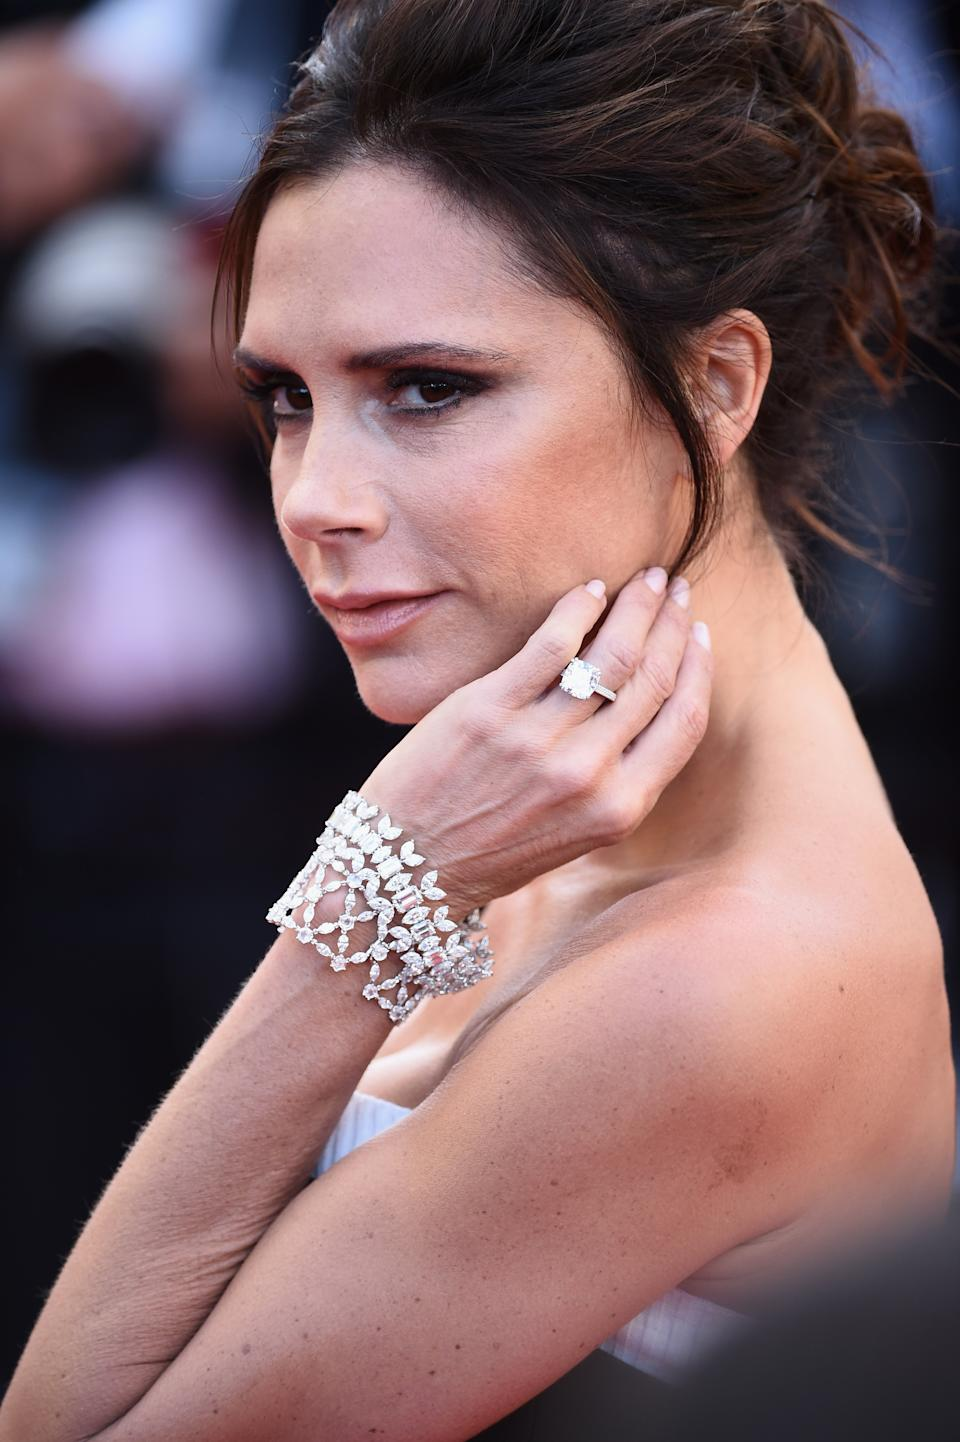 Victoria Beckham has a selection of emerald cut engagement rings. (Getty Images)